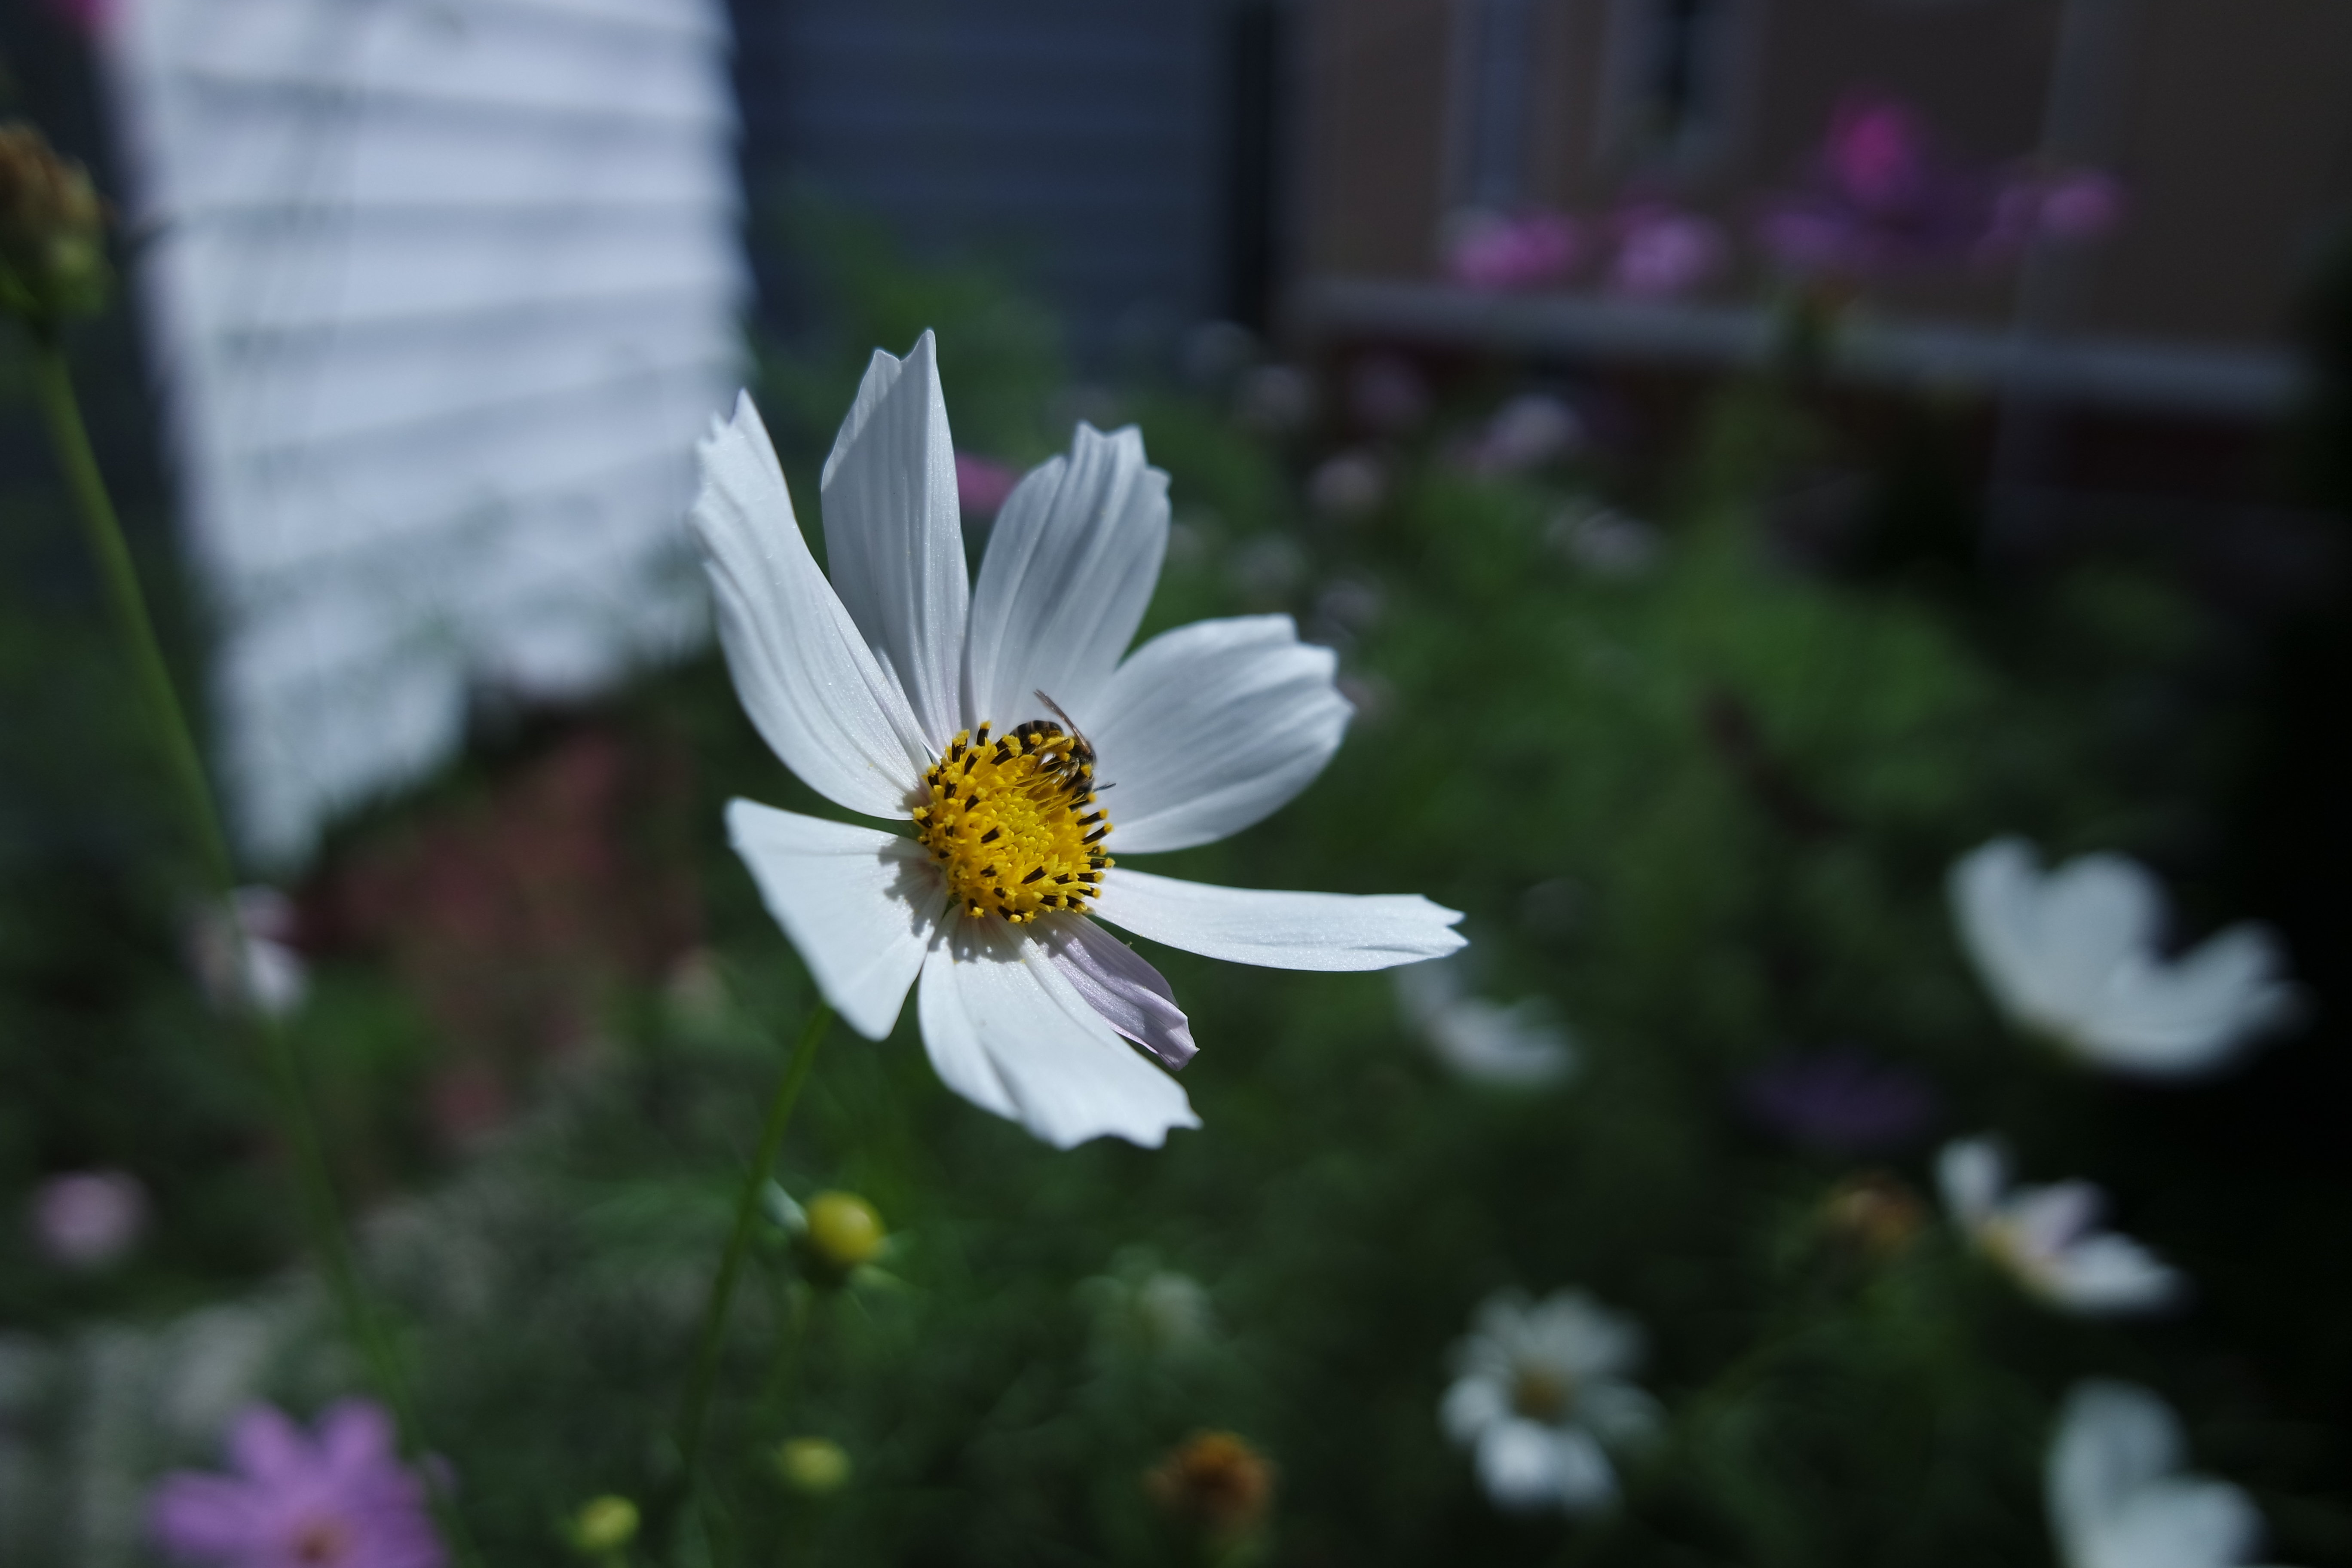 A sample photo of a flower shot by the Samsung NX3000.